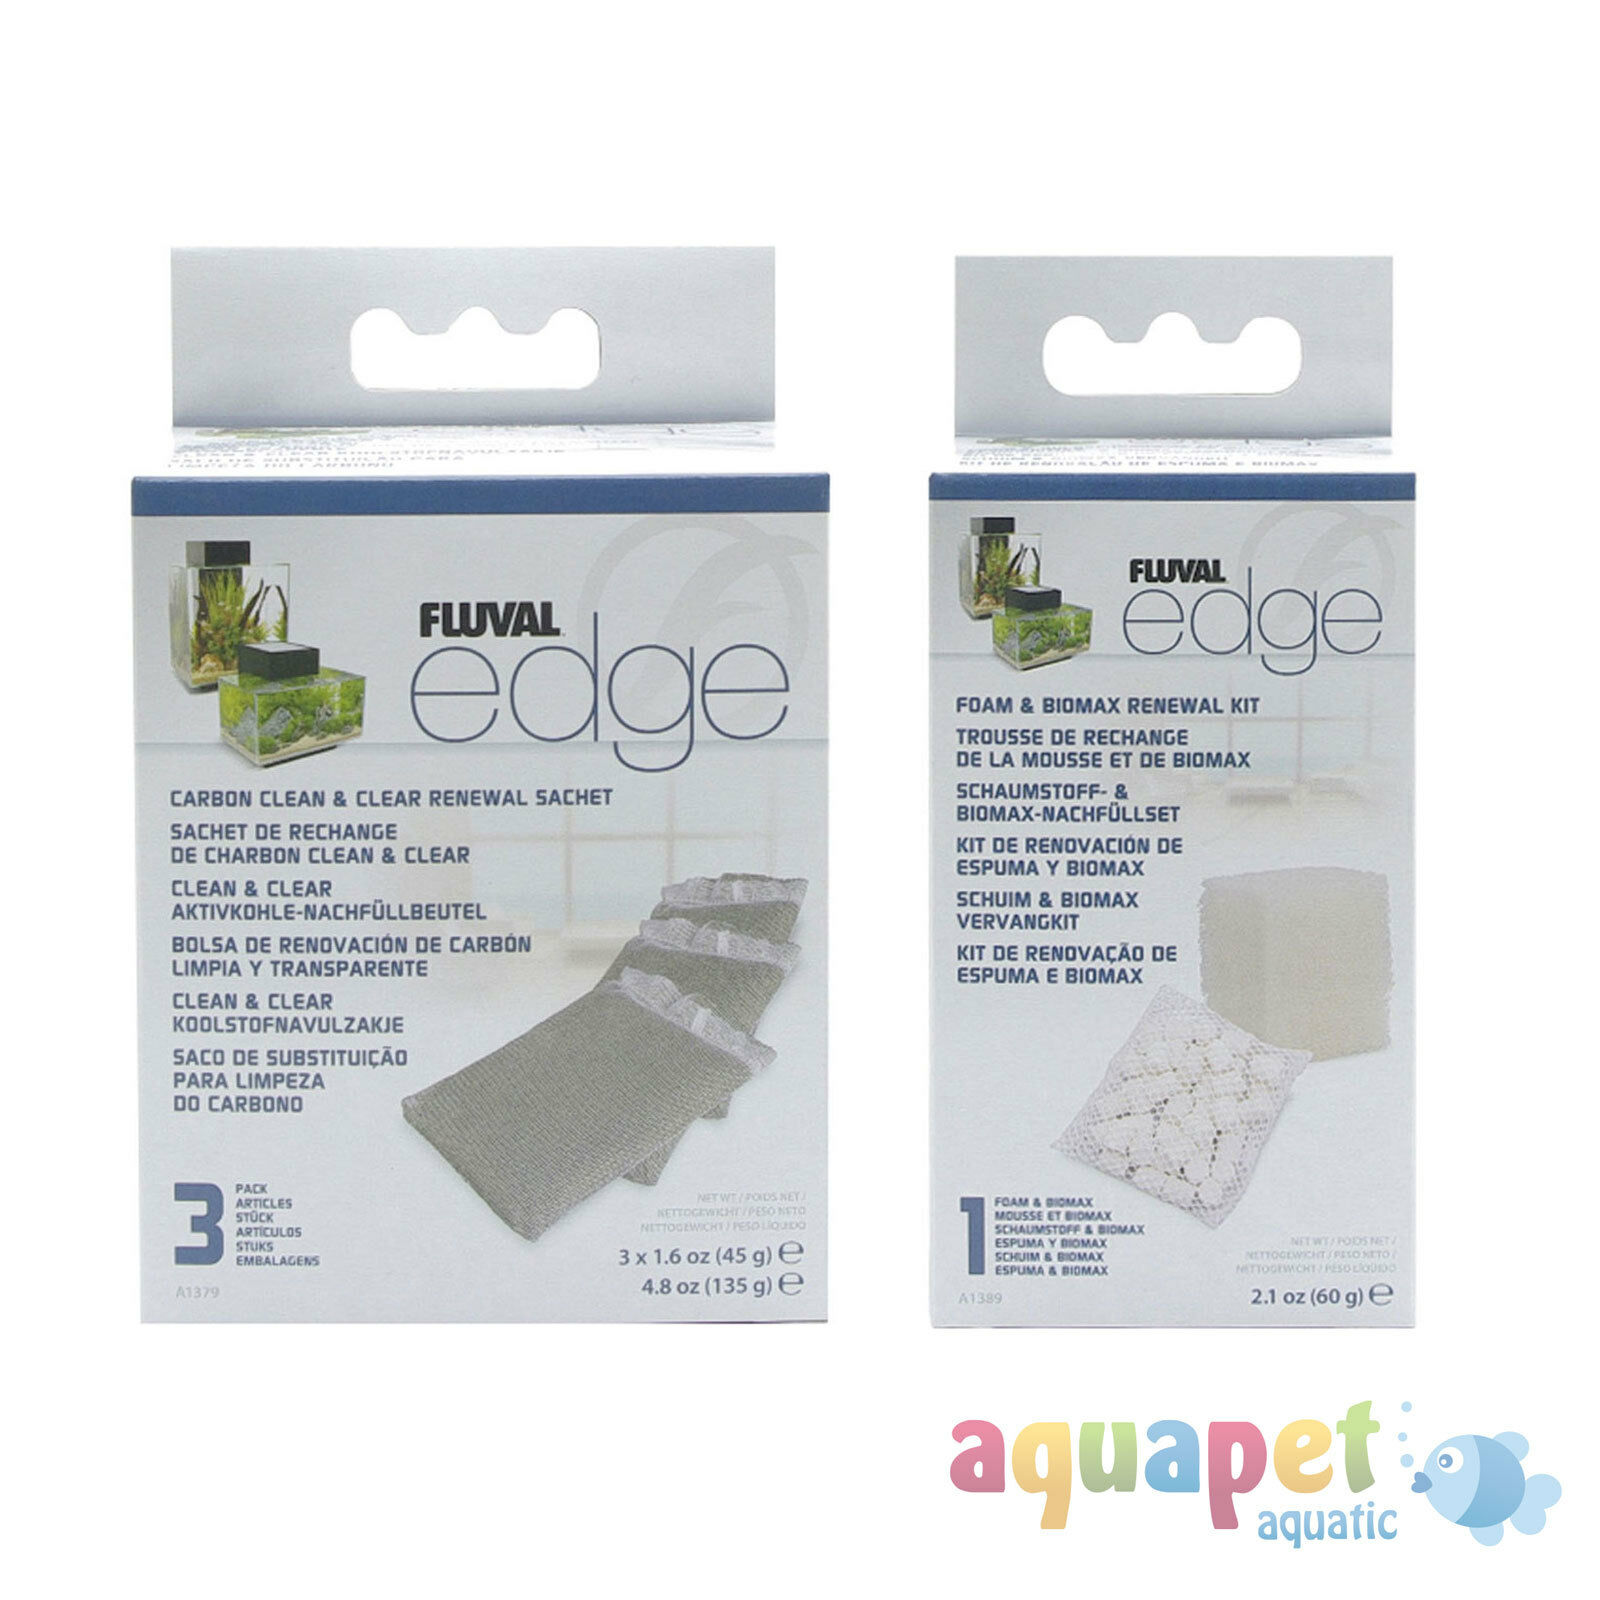 Fluval EDGE Filter Service Kit Carbon Clean & Clear and Foam & BIOMAX